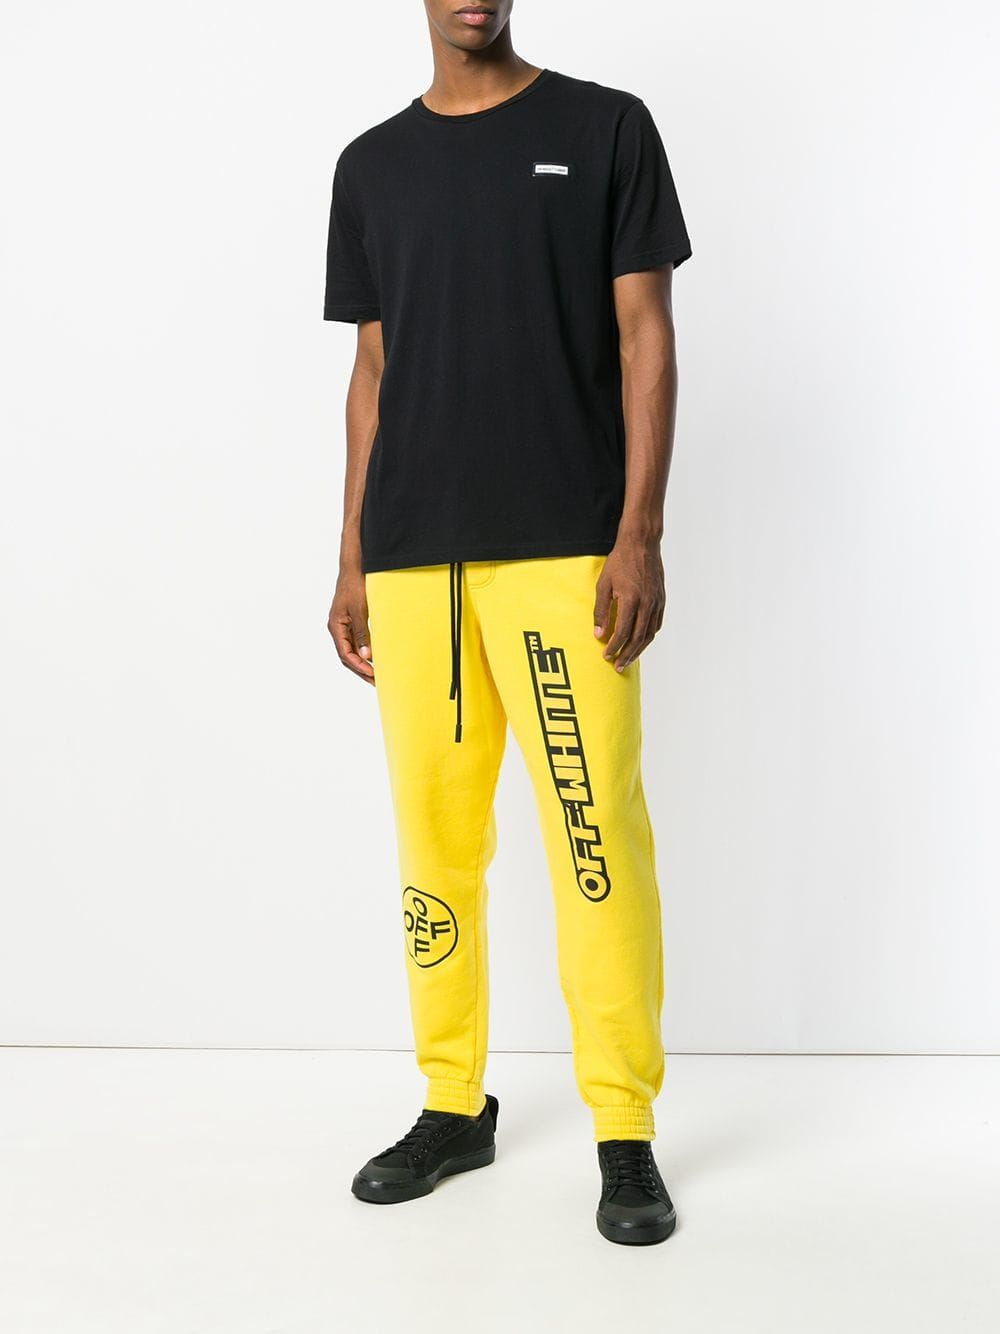 c8d86e9a7593 Off-White logo tracksuit bottoms | CRACK THE CODE Q319 | Tracksuit ...